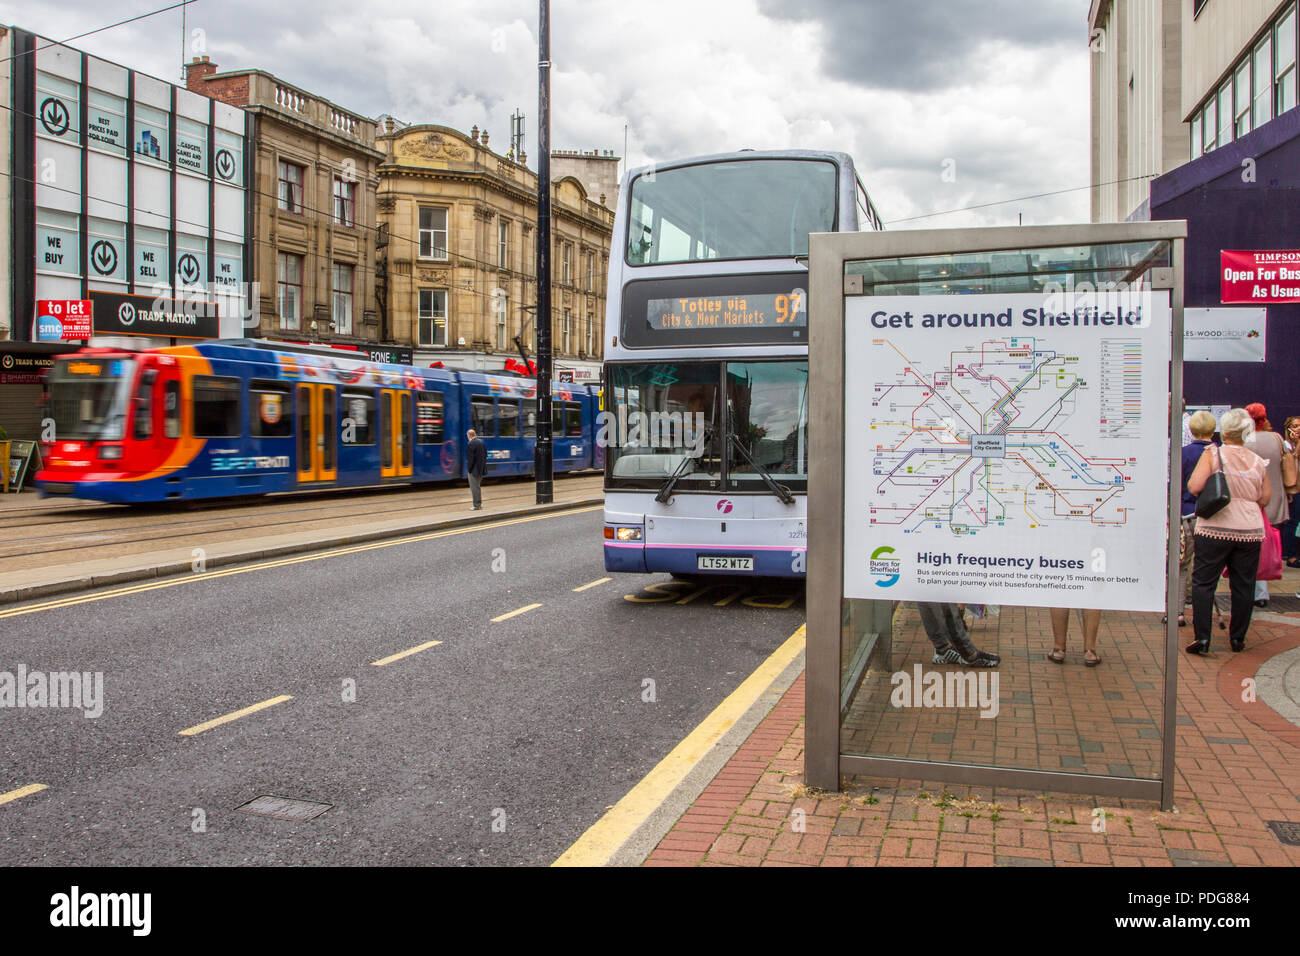 Bus, bus stop, trams in Sheffield city centre, UK - Stock Image